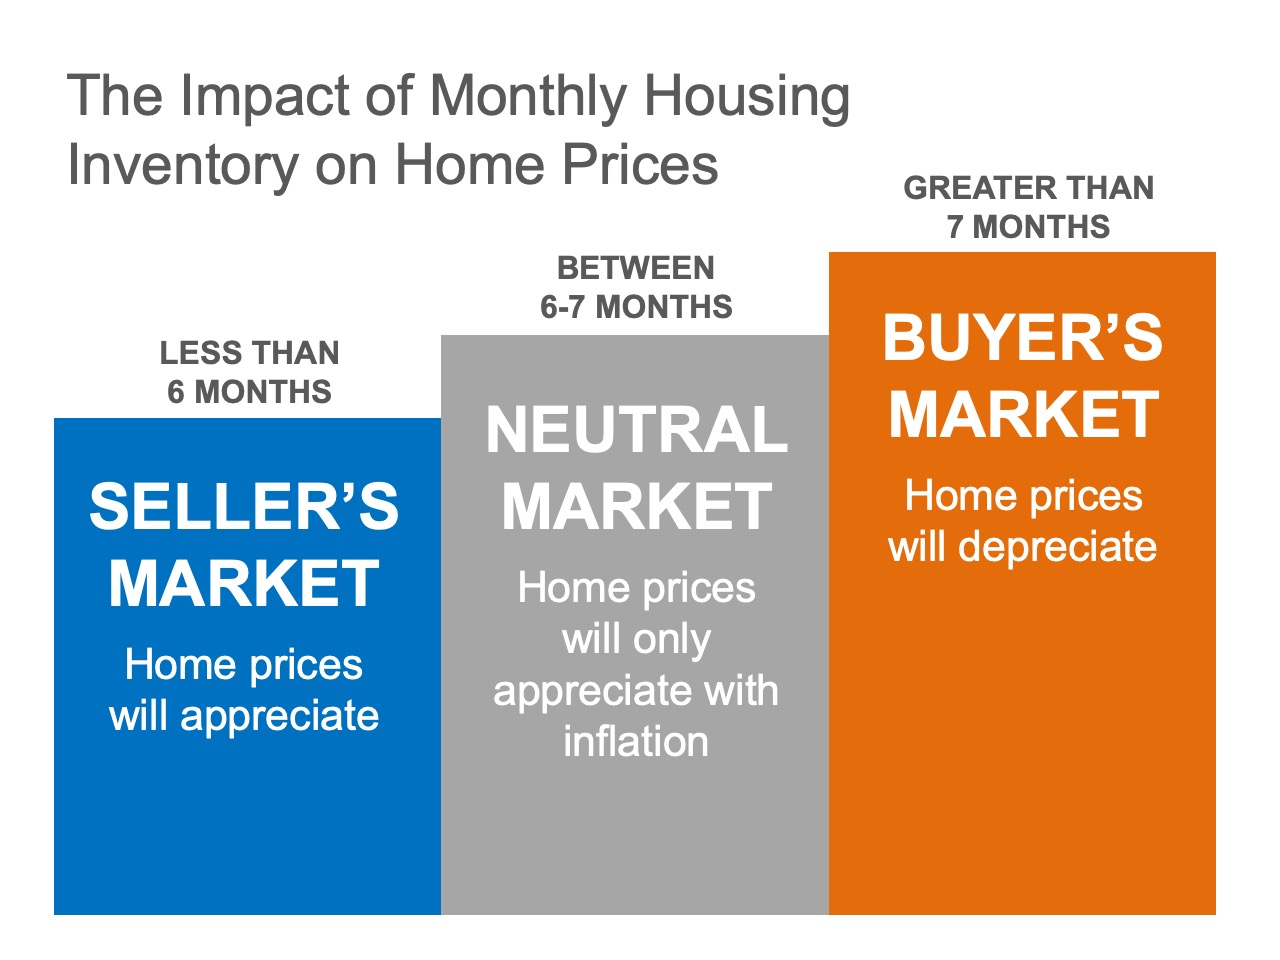 Existing-Home Sales Report Indicates Now Is a Great Time to Sell   MyKCM